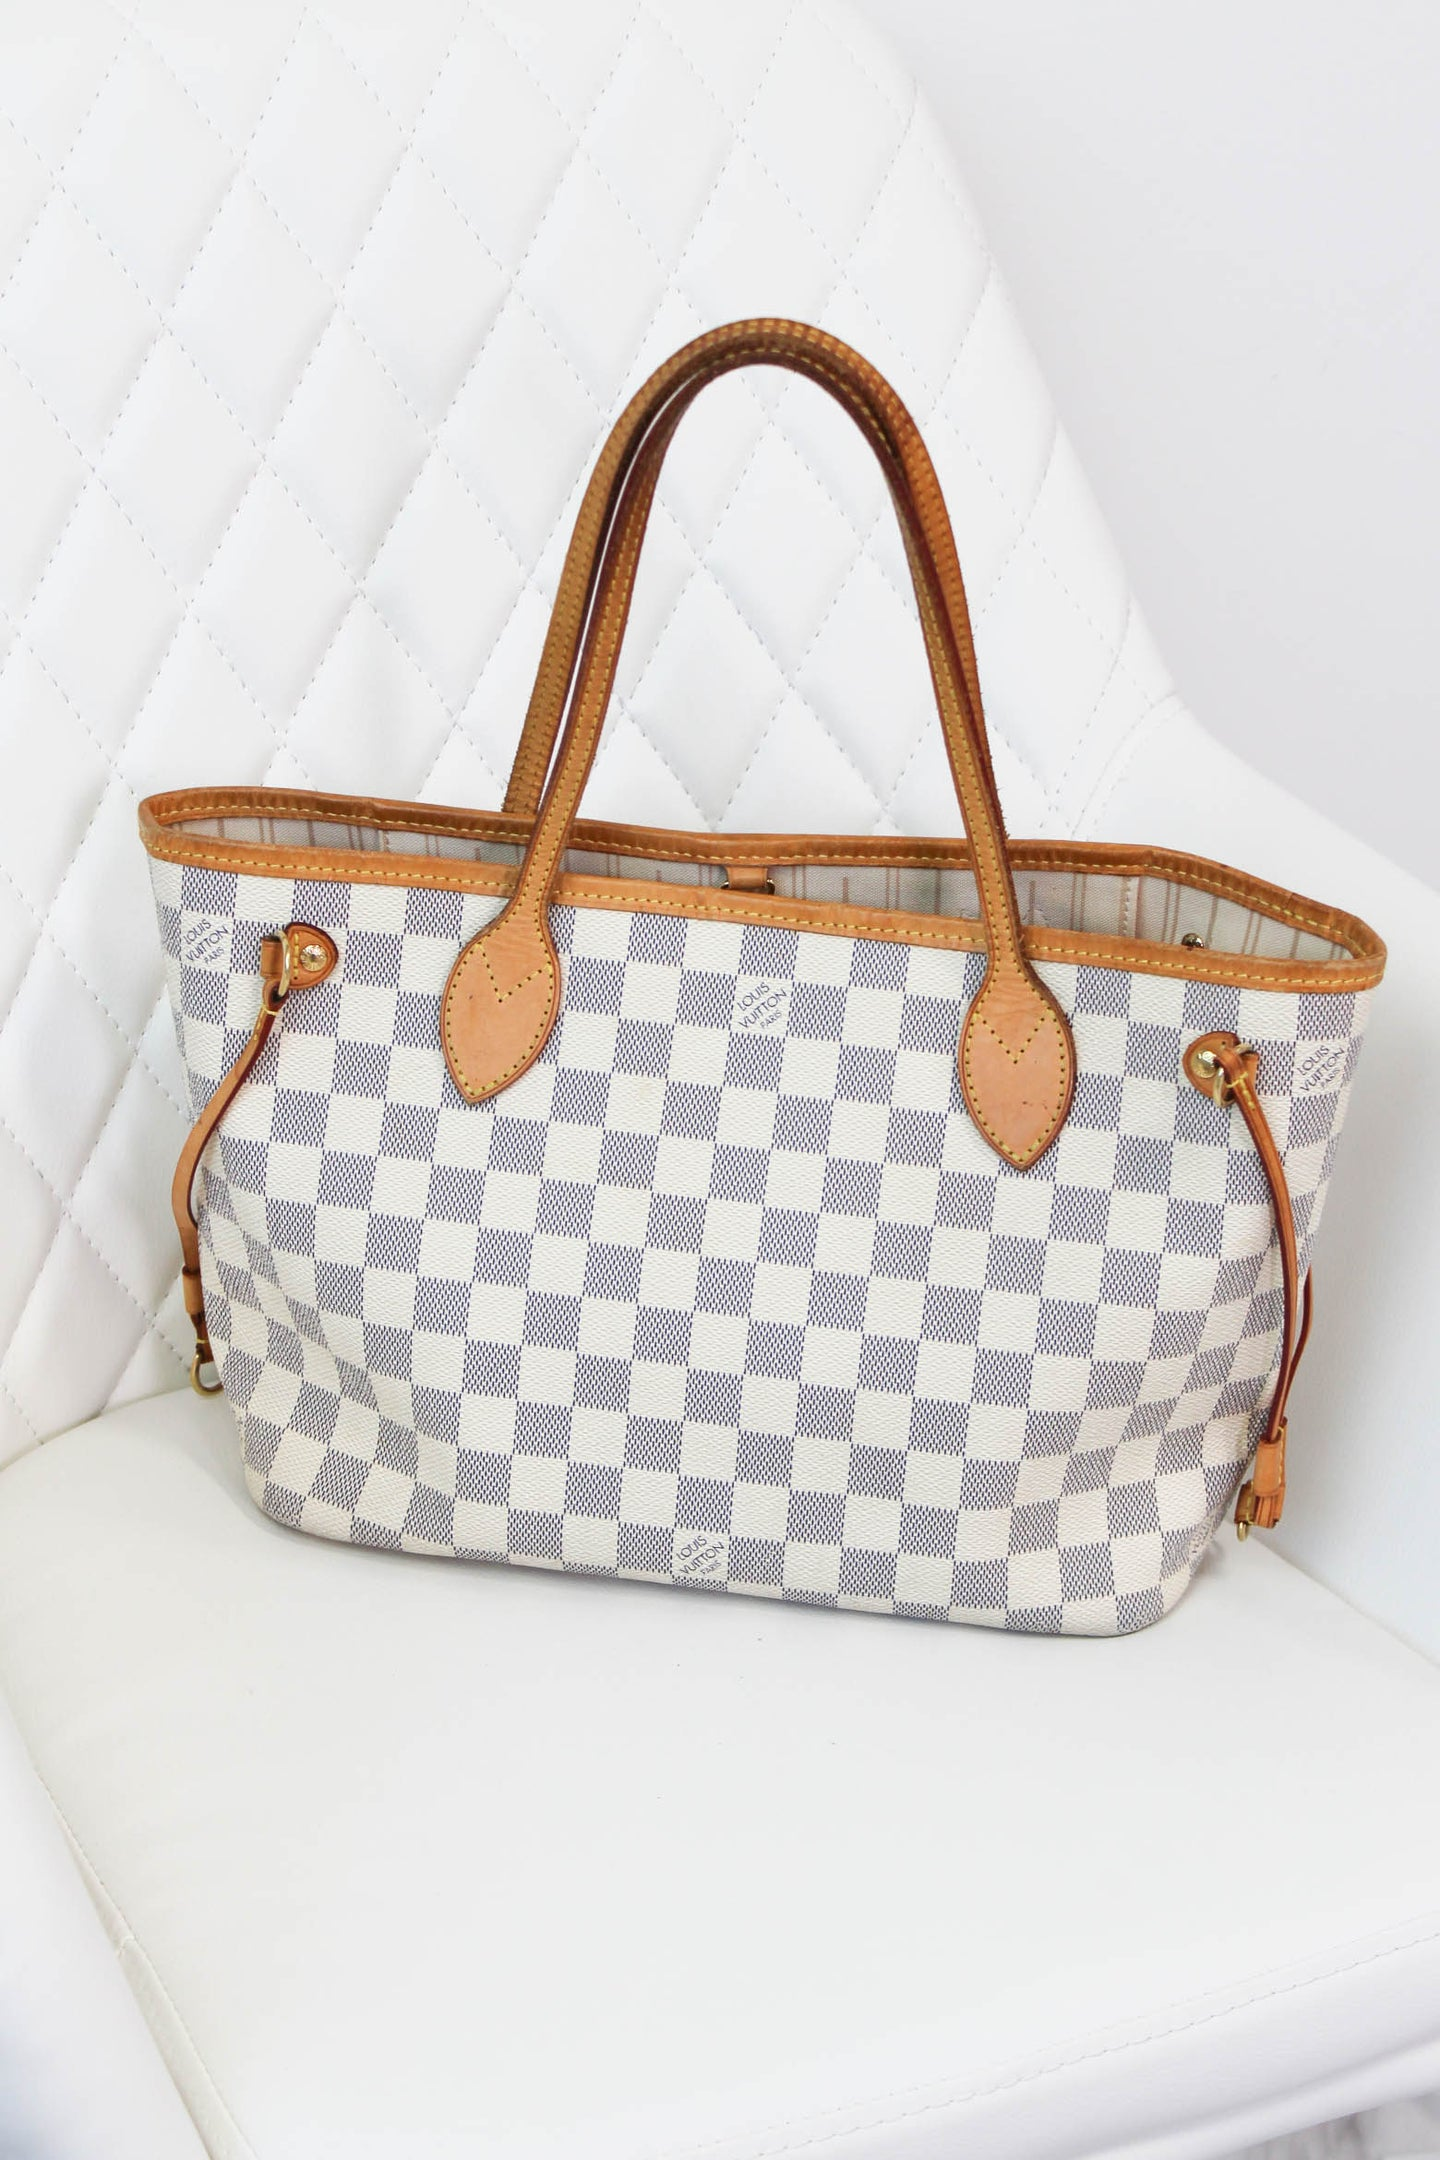 Louis Vuitton Azur Neverful PM